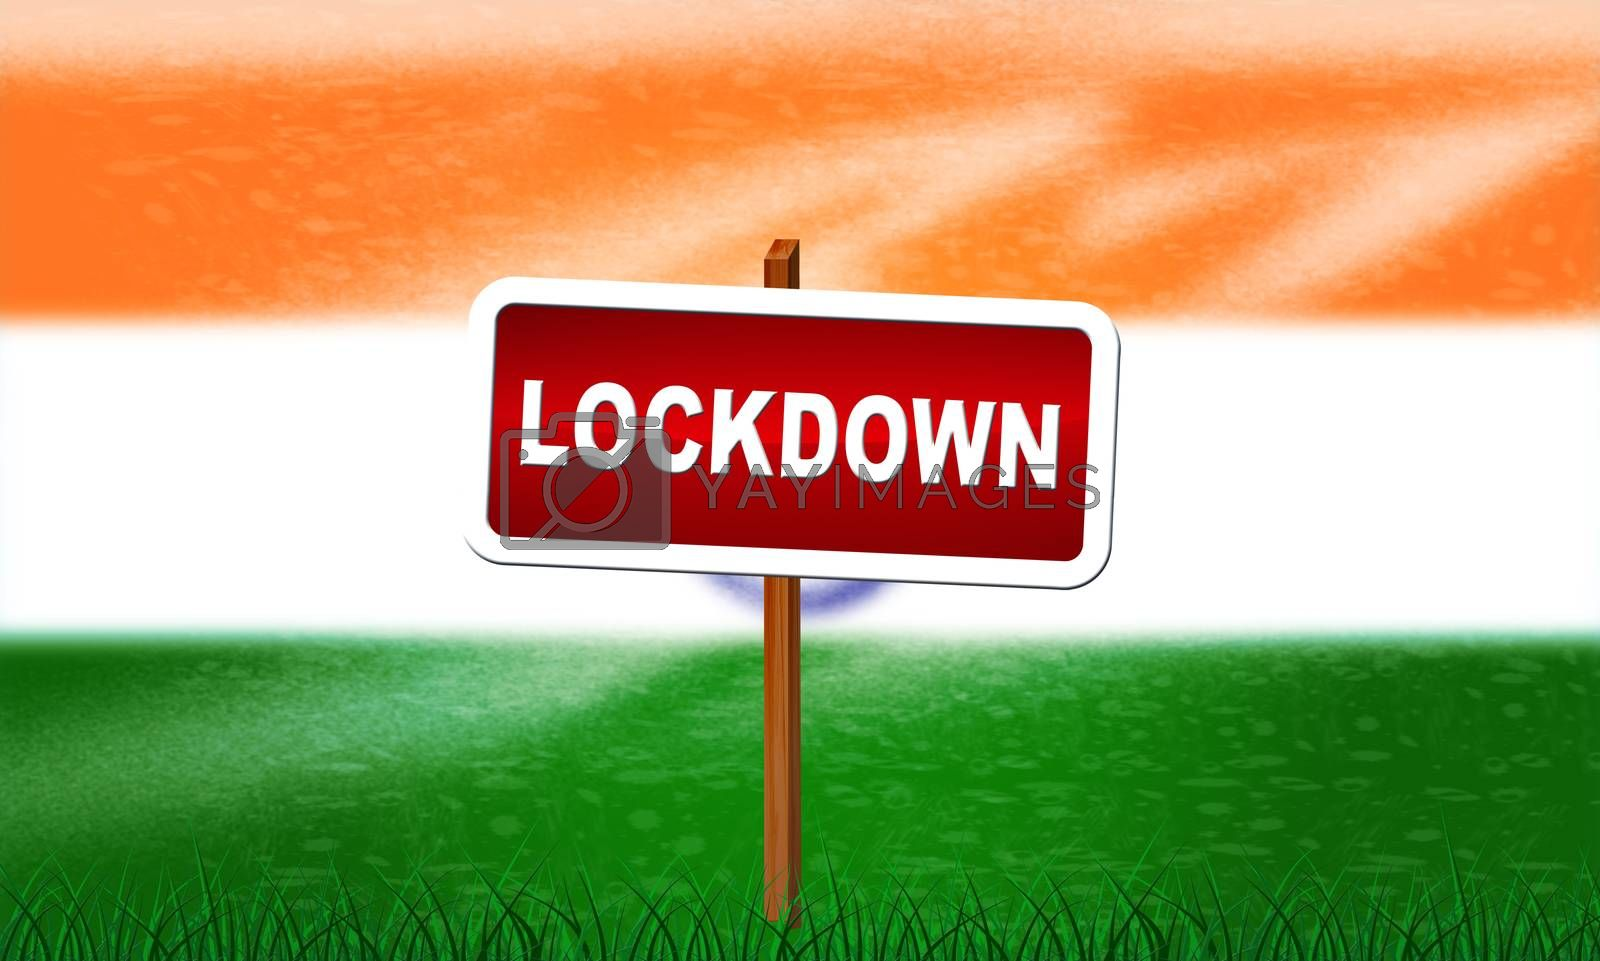 India lockdown preventing ncov epidemic or outbreak. Covid 19 Indian precaution to isolate disease infection - 3d Illustration